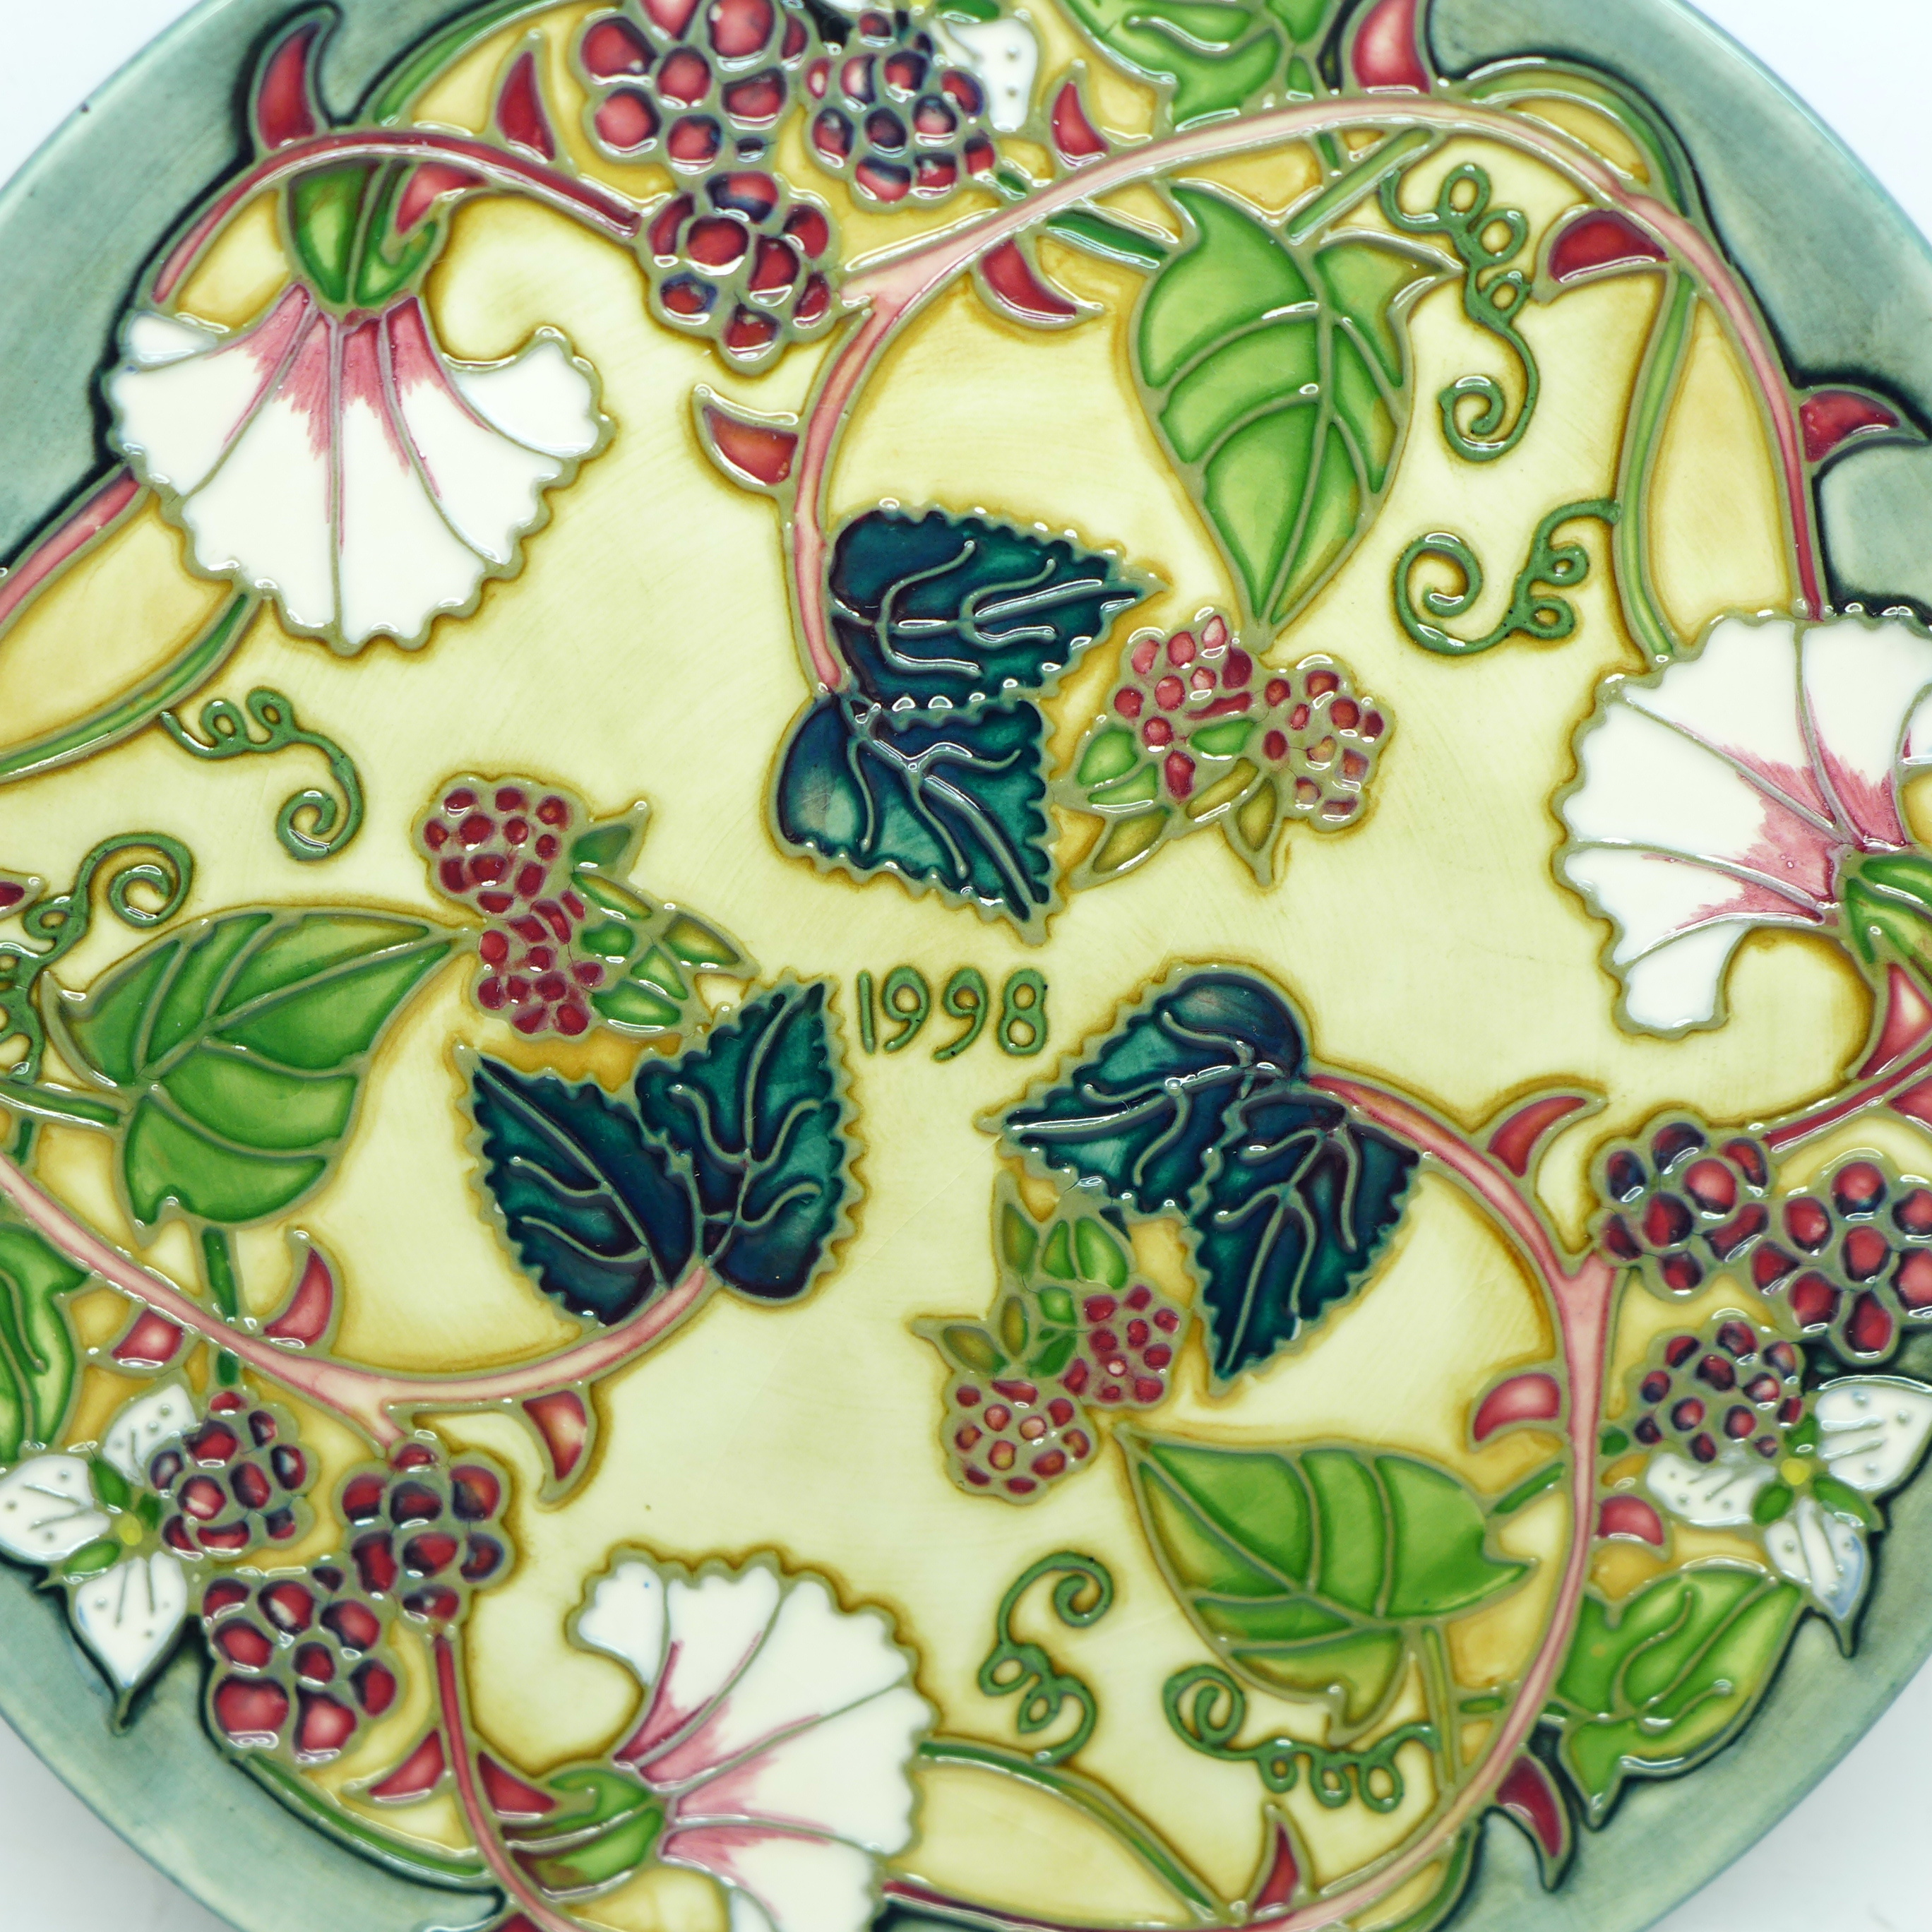 A Moorcroft Limited Edition Year Plate 1998, 211/750, no box, 22cm - Image 2 of 5